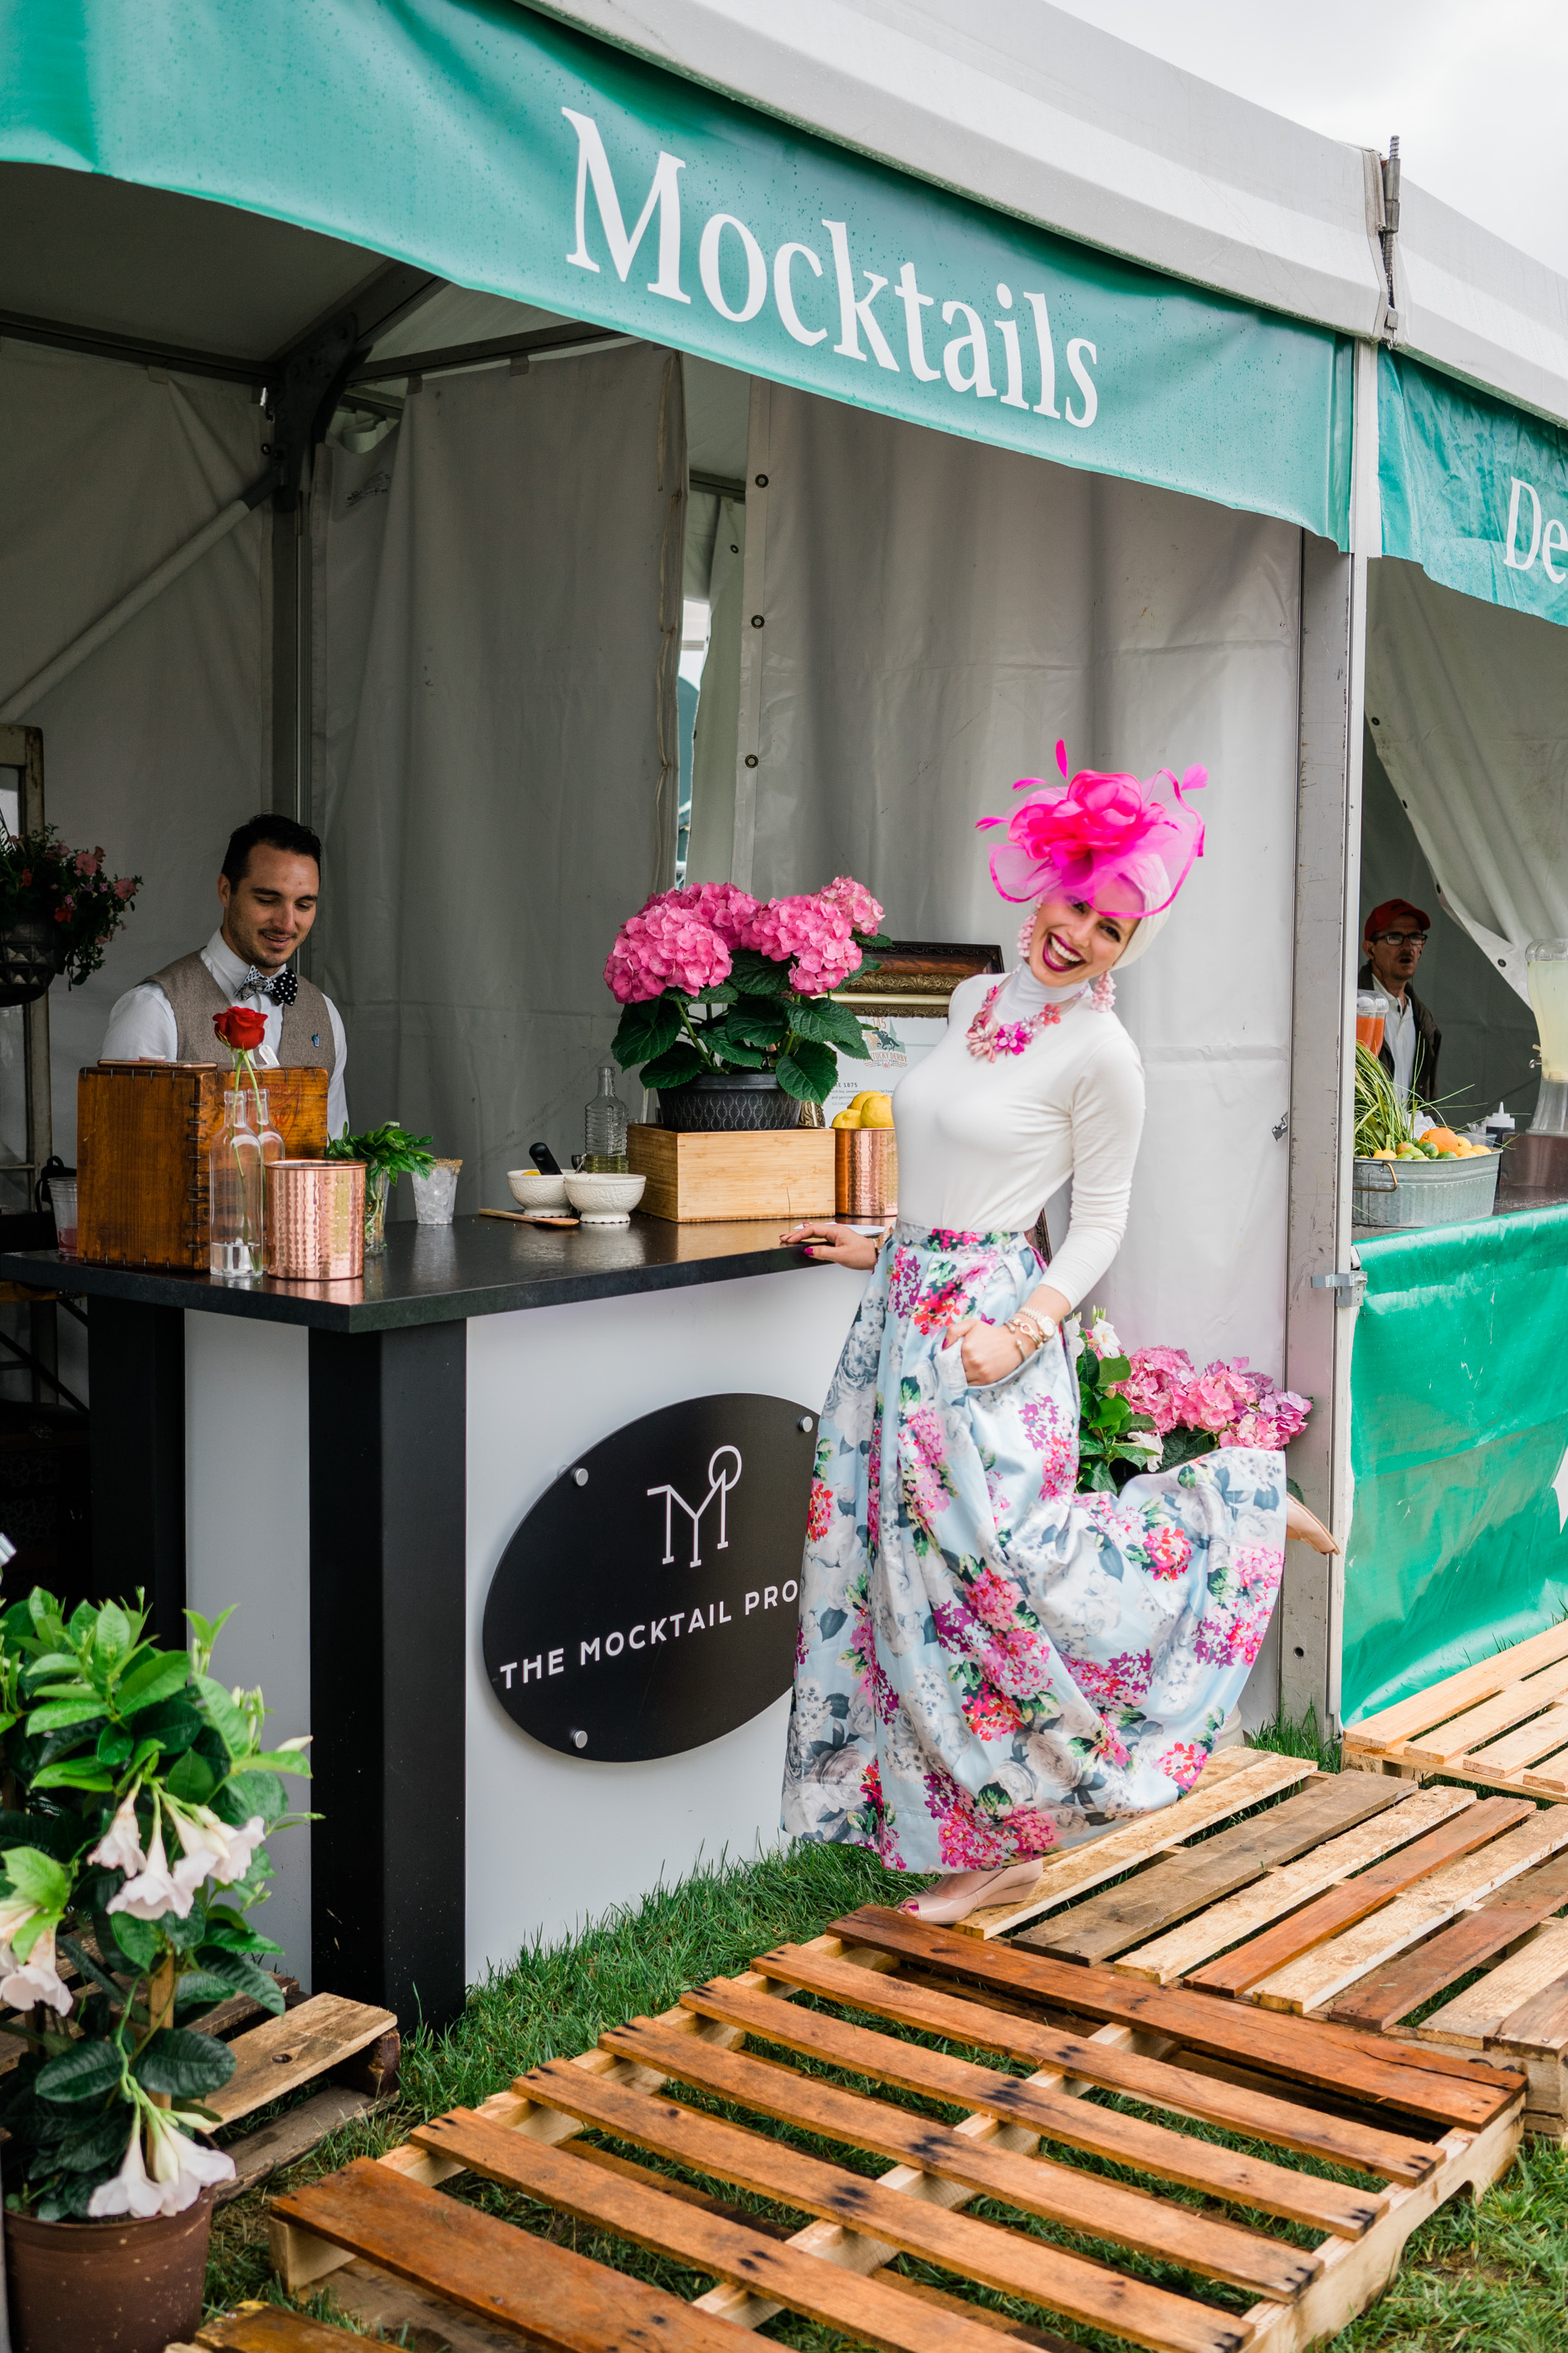 Kentucky Oaks & Derby 2019 - A collaborative effort with Old Forester to craft & serve the First ever Mocktails at Churchill Downs